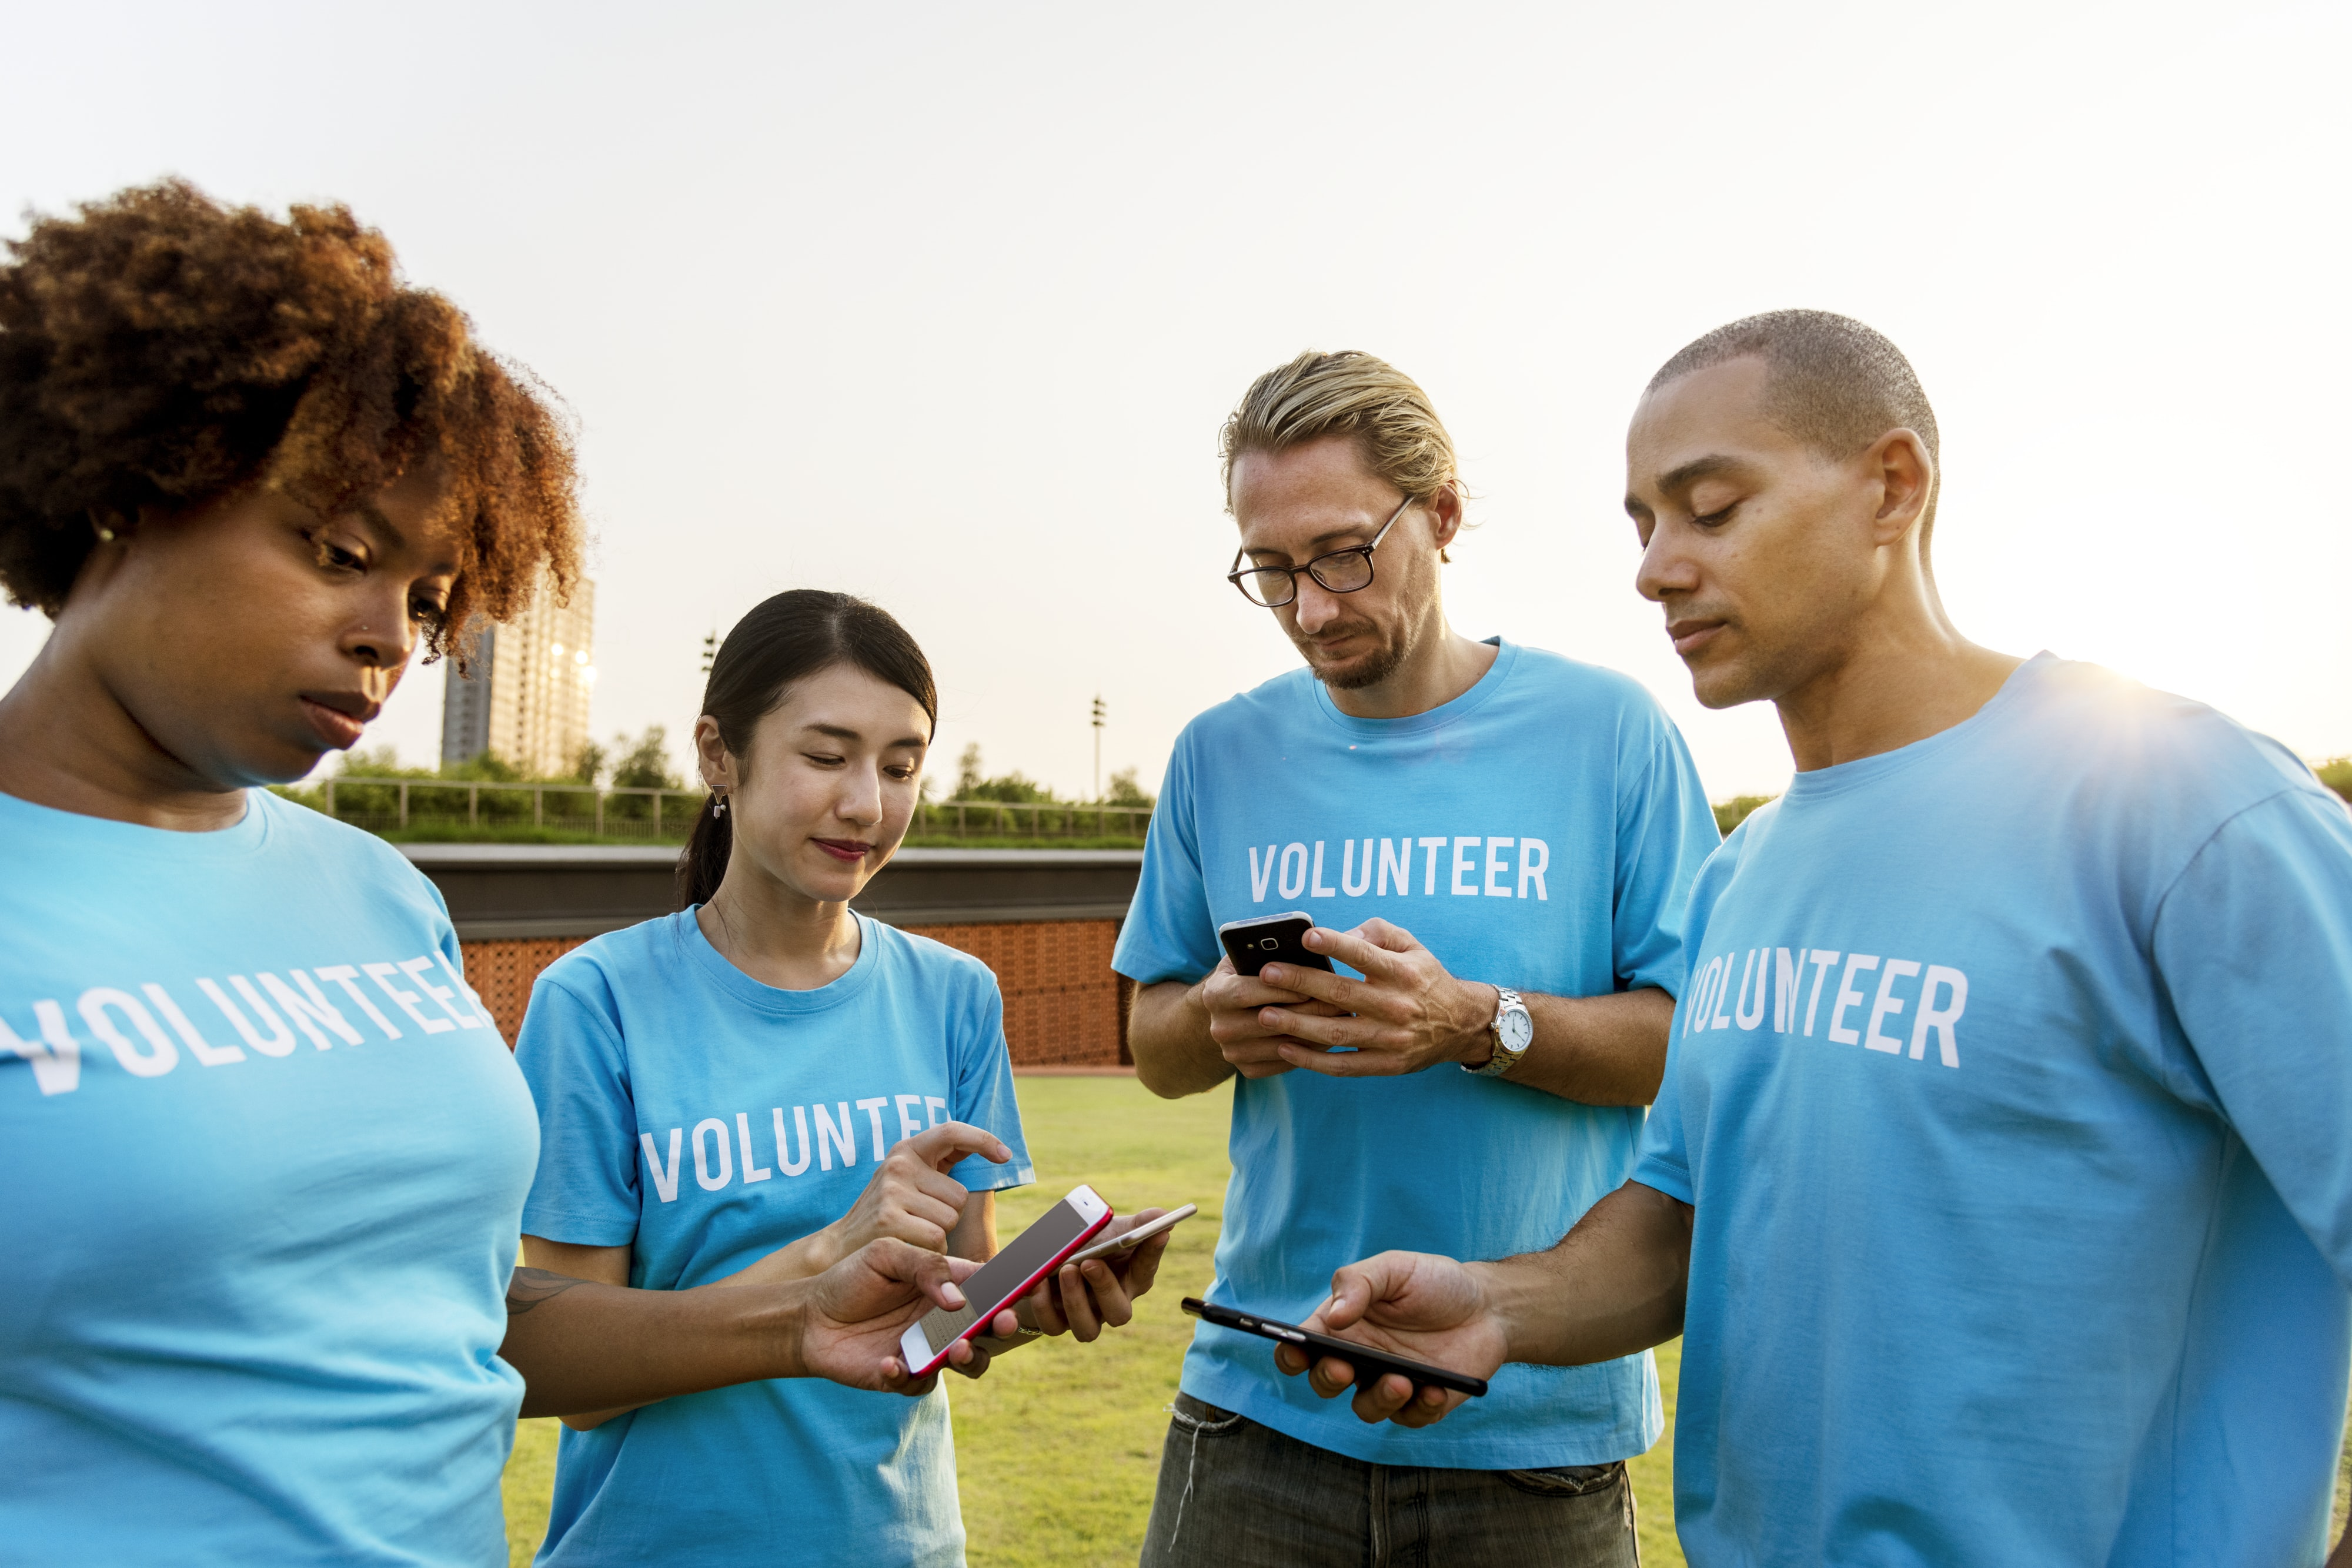 four people with Volunteer shirts standing on grass field at daytime